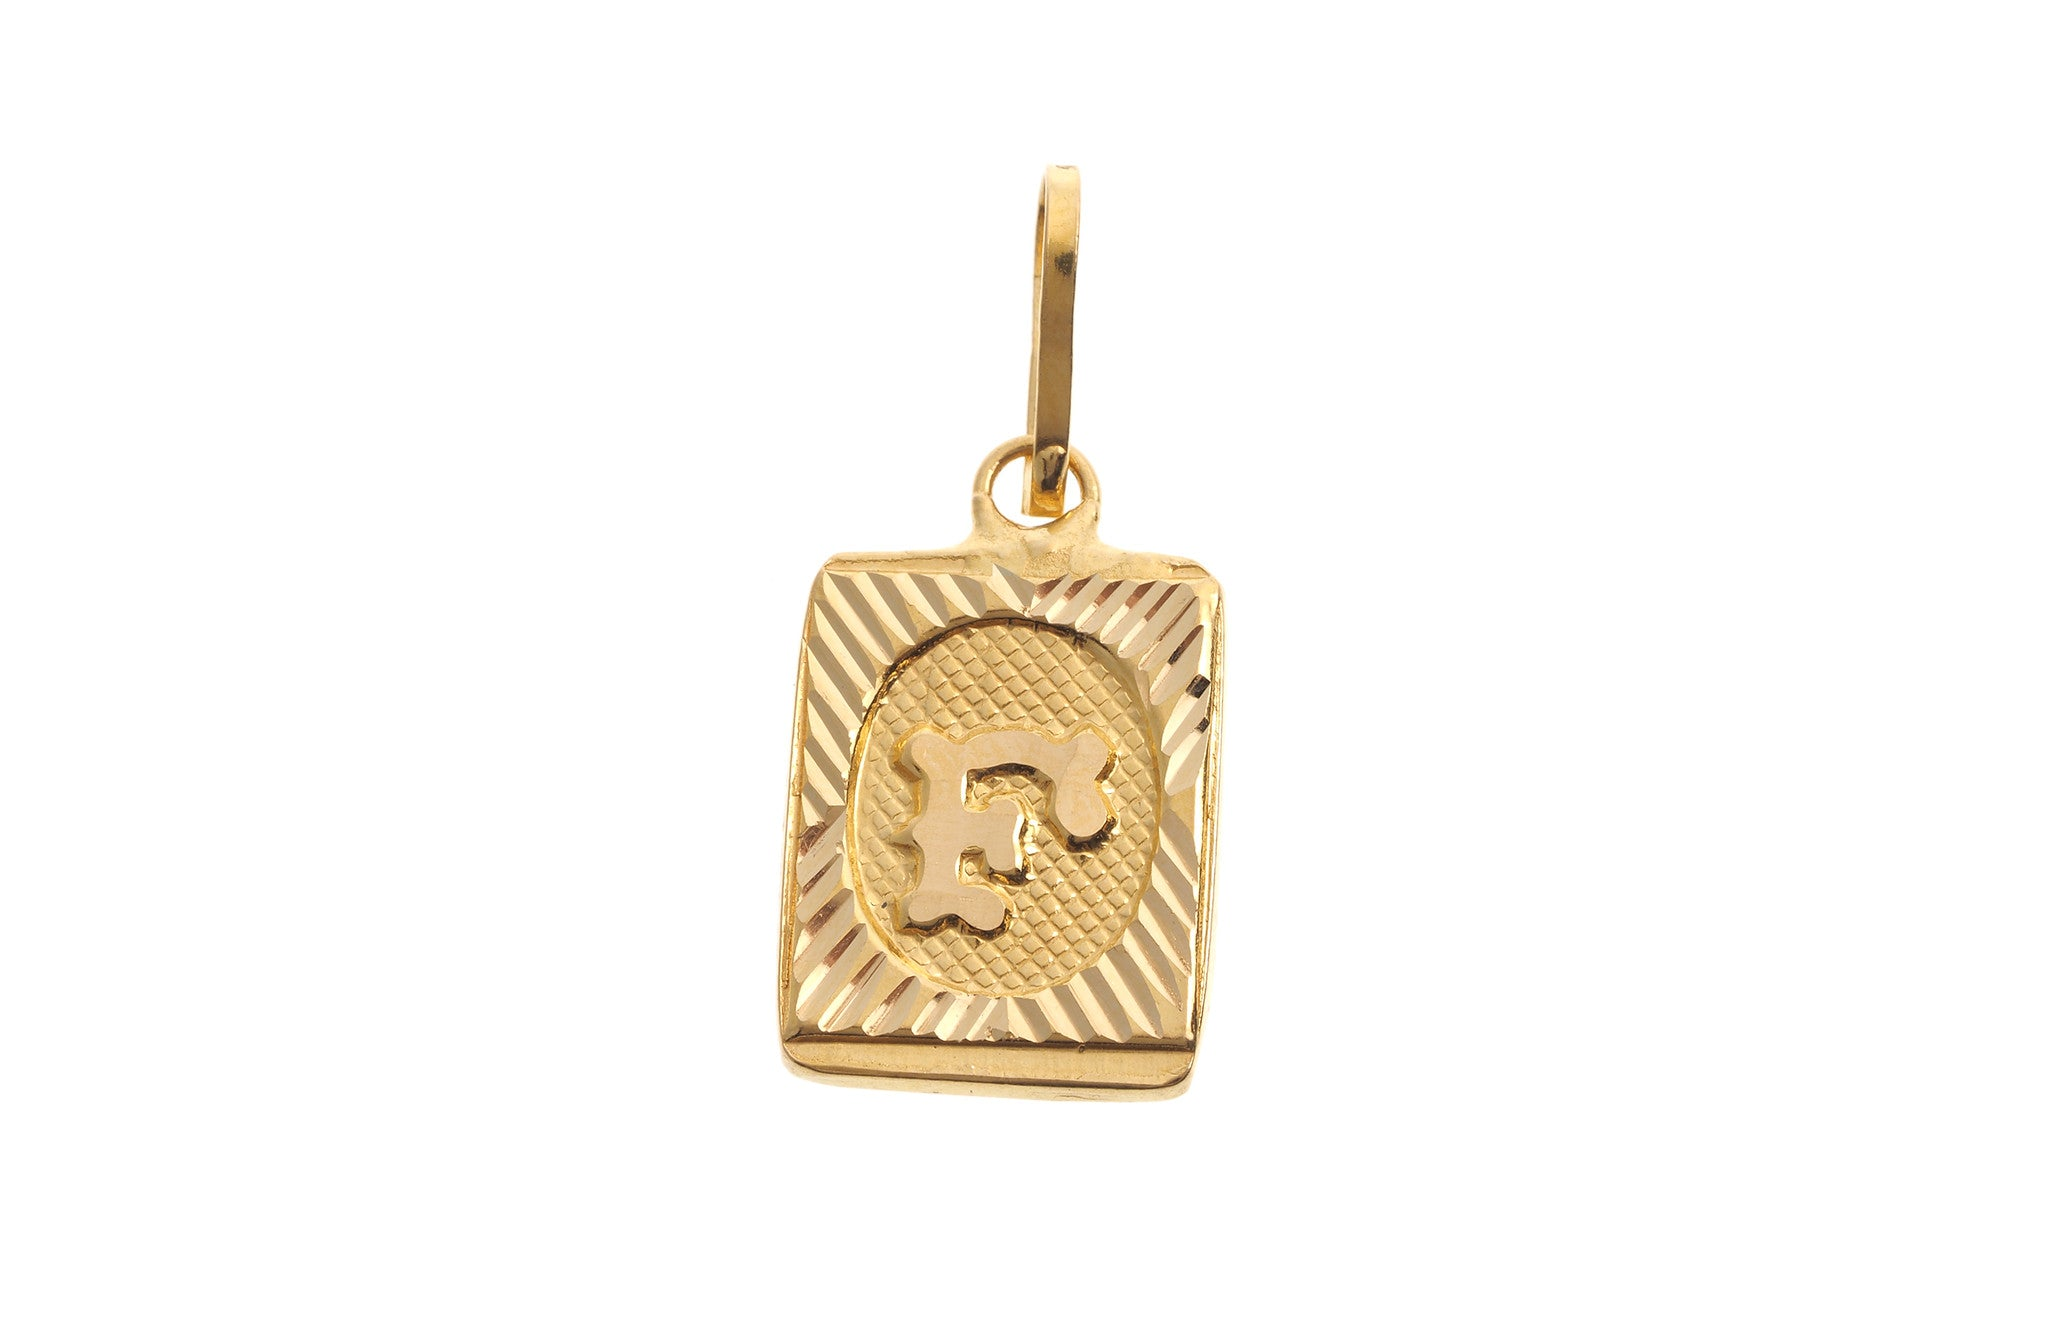 22ct Yellow Gold 'F' Initial Pendant (0.9g) (P-5618)